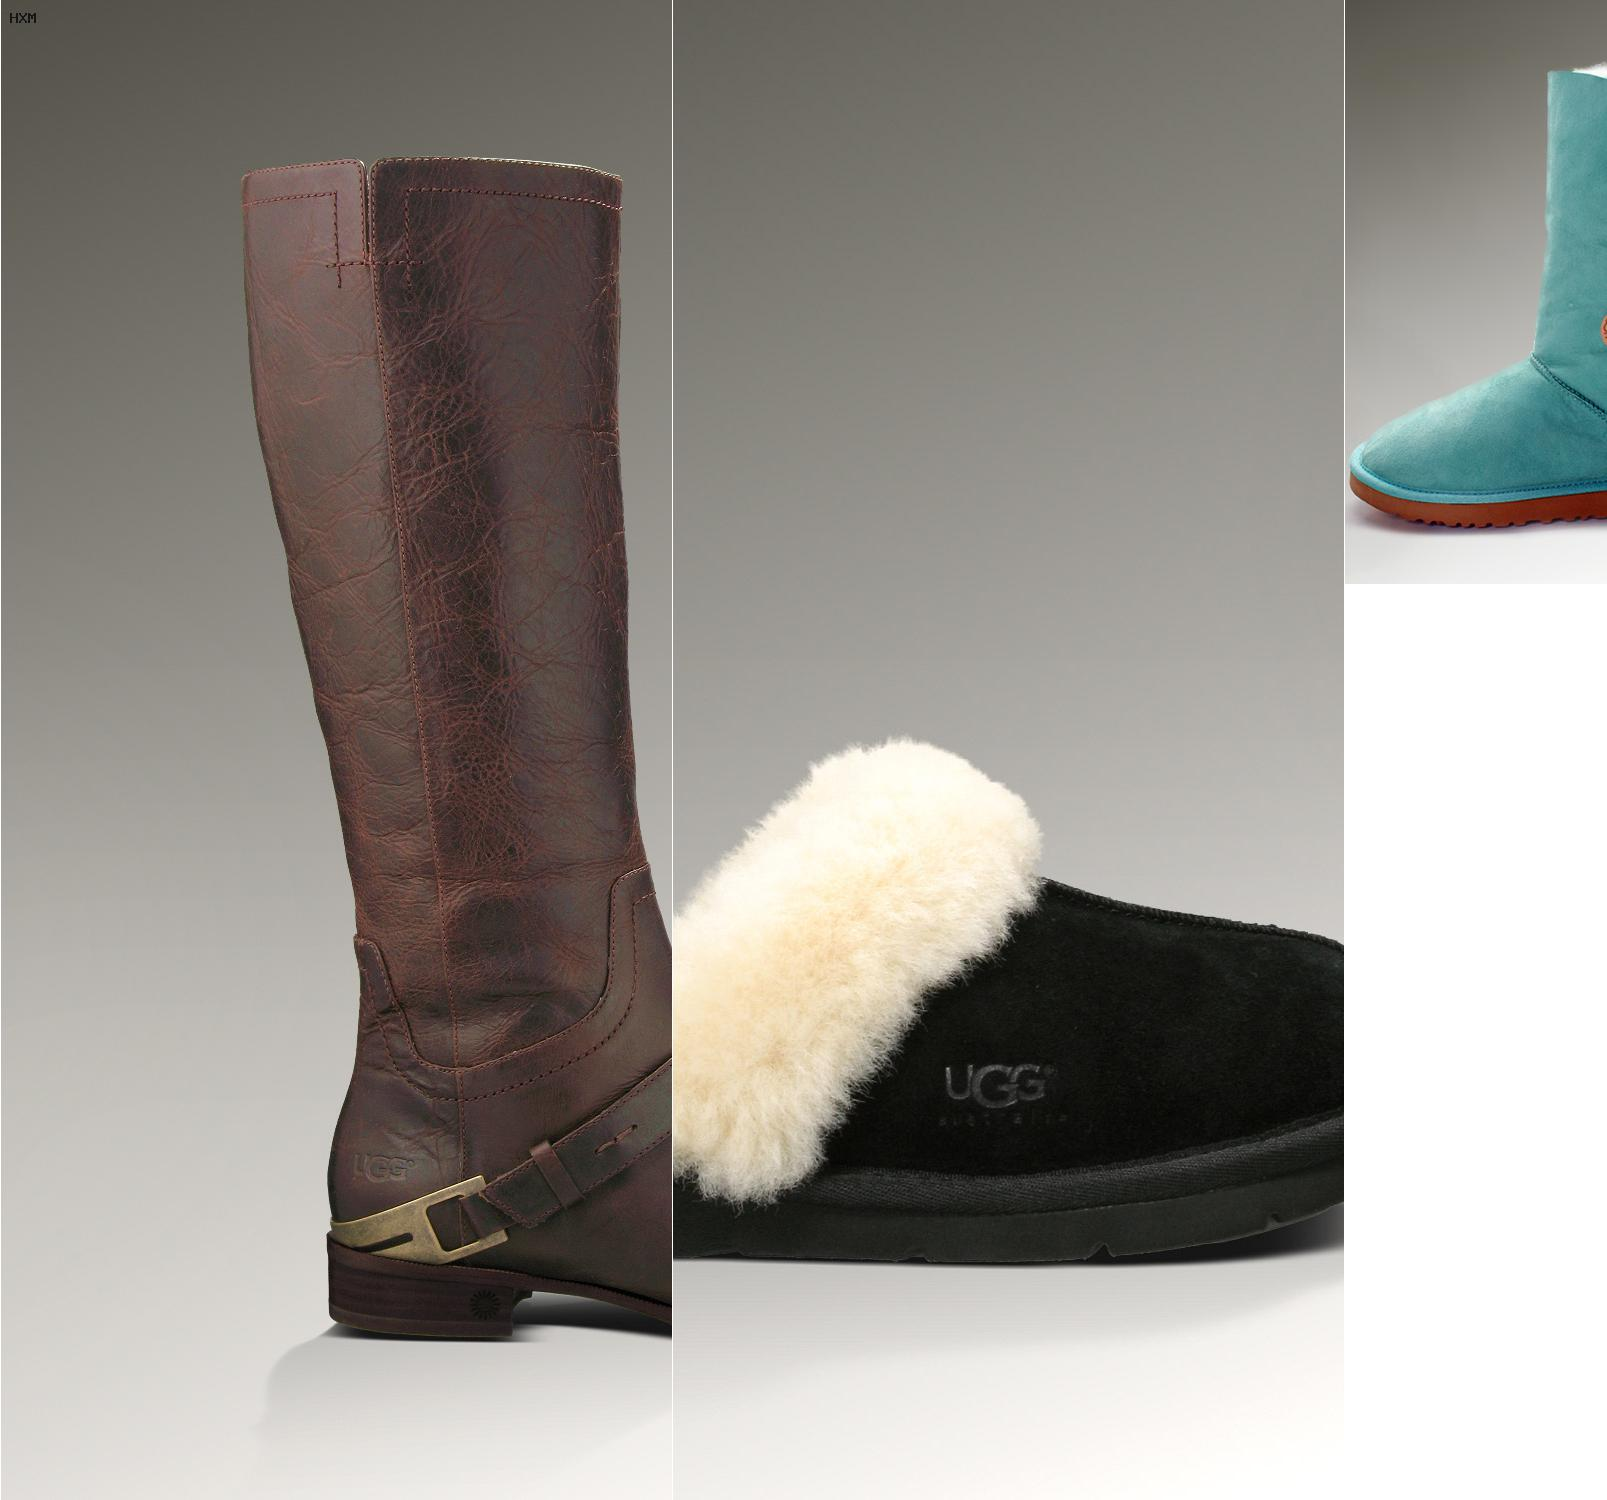 ugg boots online shop fake